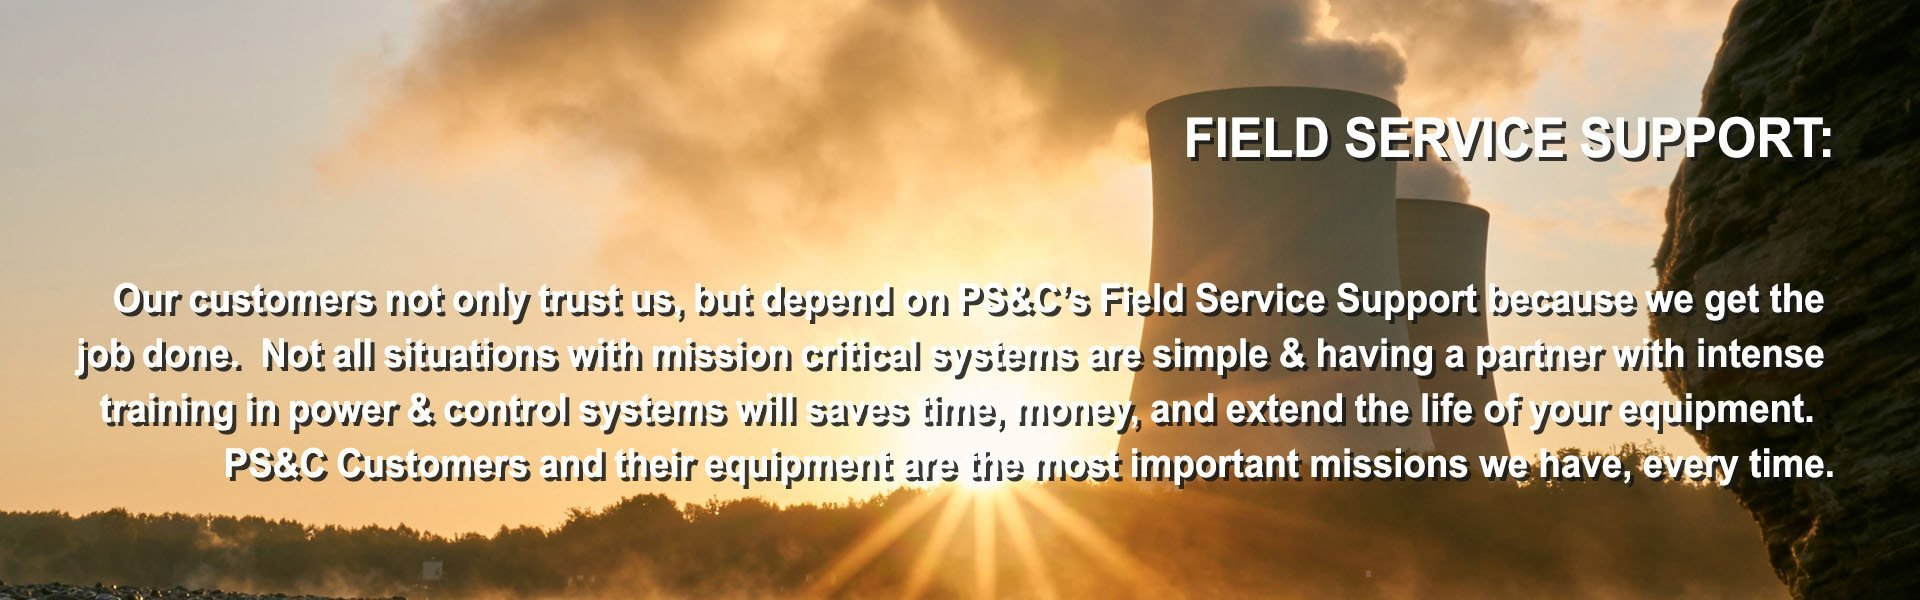 Field Service Support